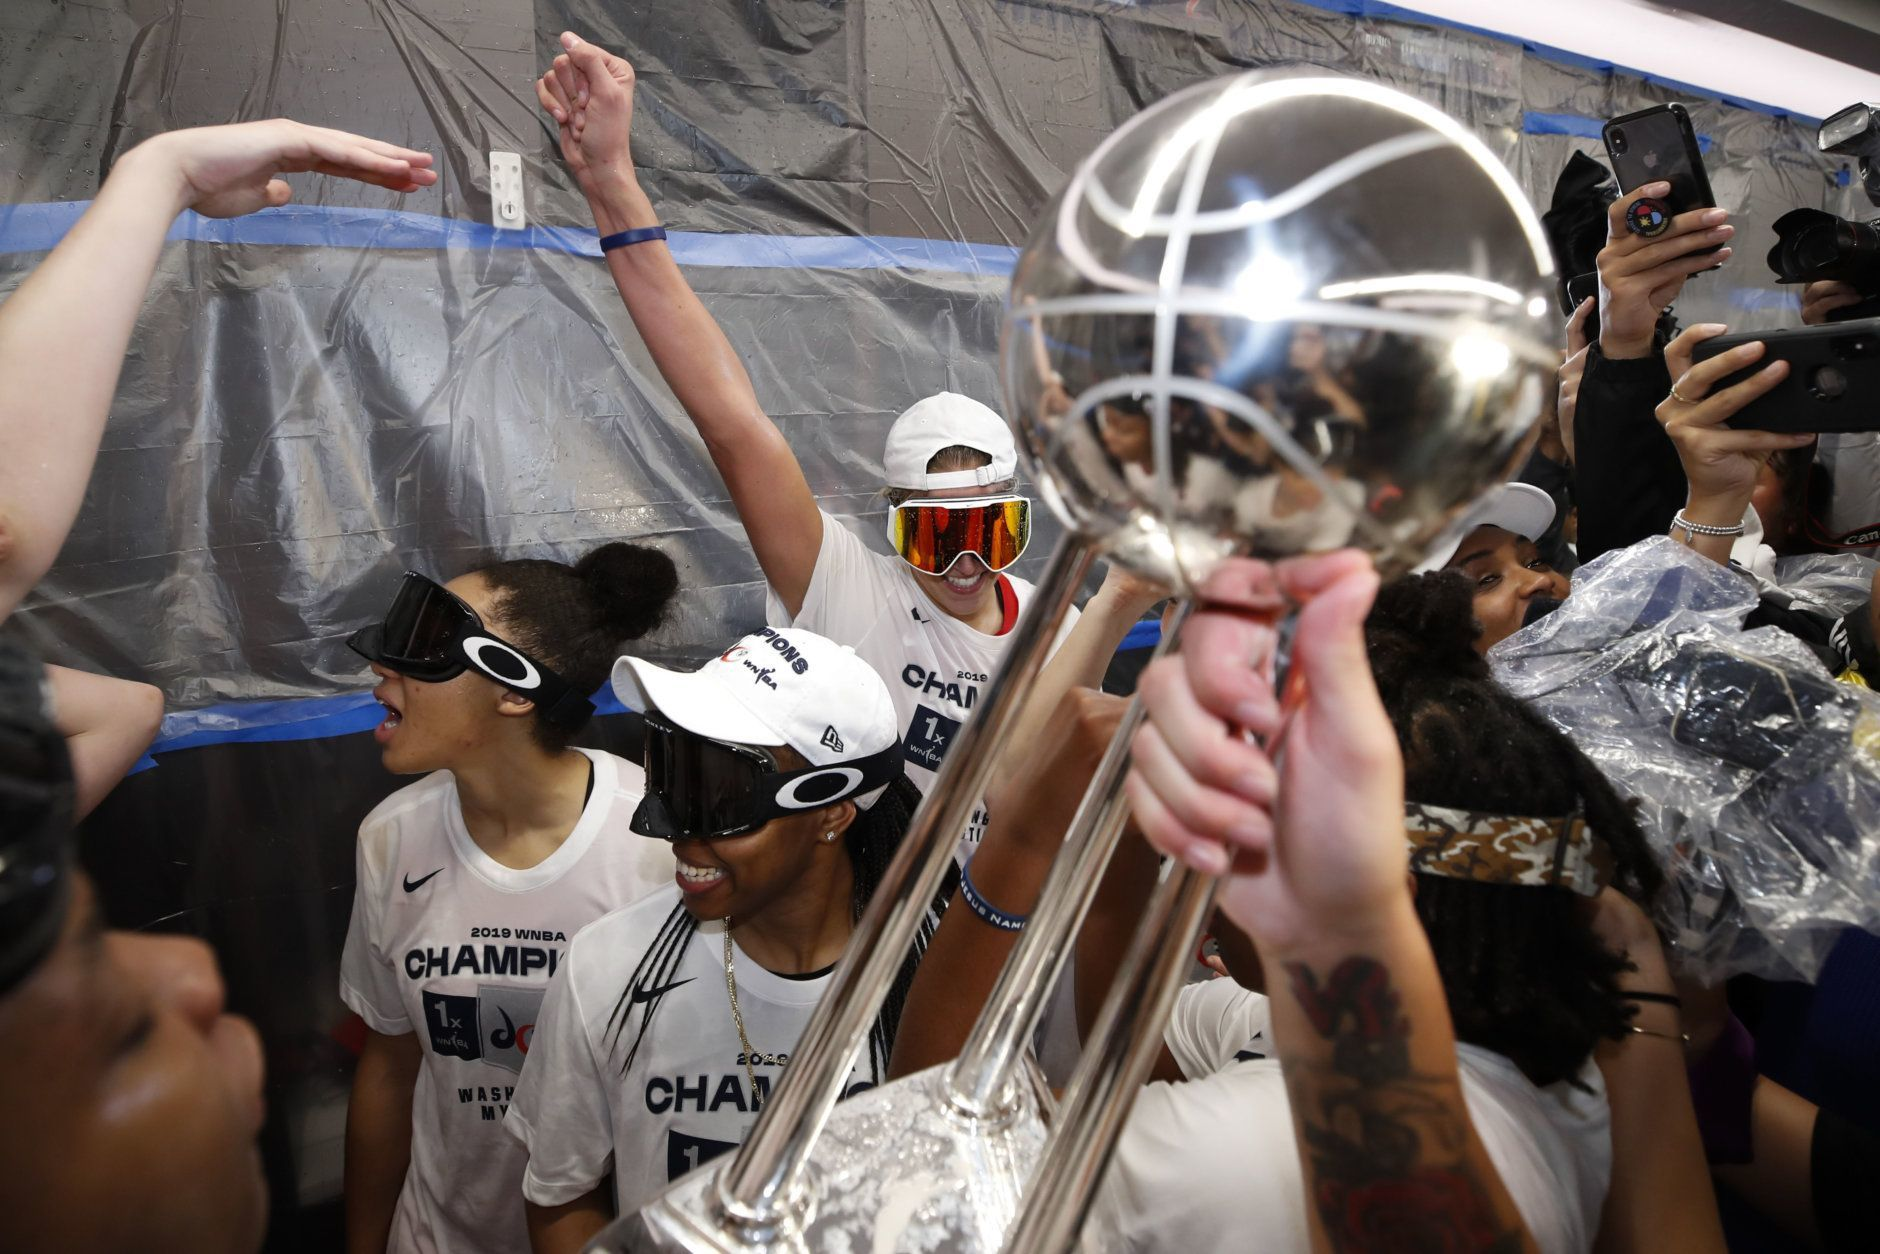 Washington Mystics forward Elena Delle Donne, back center, and others celebrate with the trophy in the locker room after Game 5 of basketball's WNBA Finals against the Connecticut Sun, Thursday, Oct. 10, 2019, in Washington. (AP Photo/Alex Brandon)